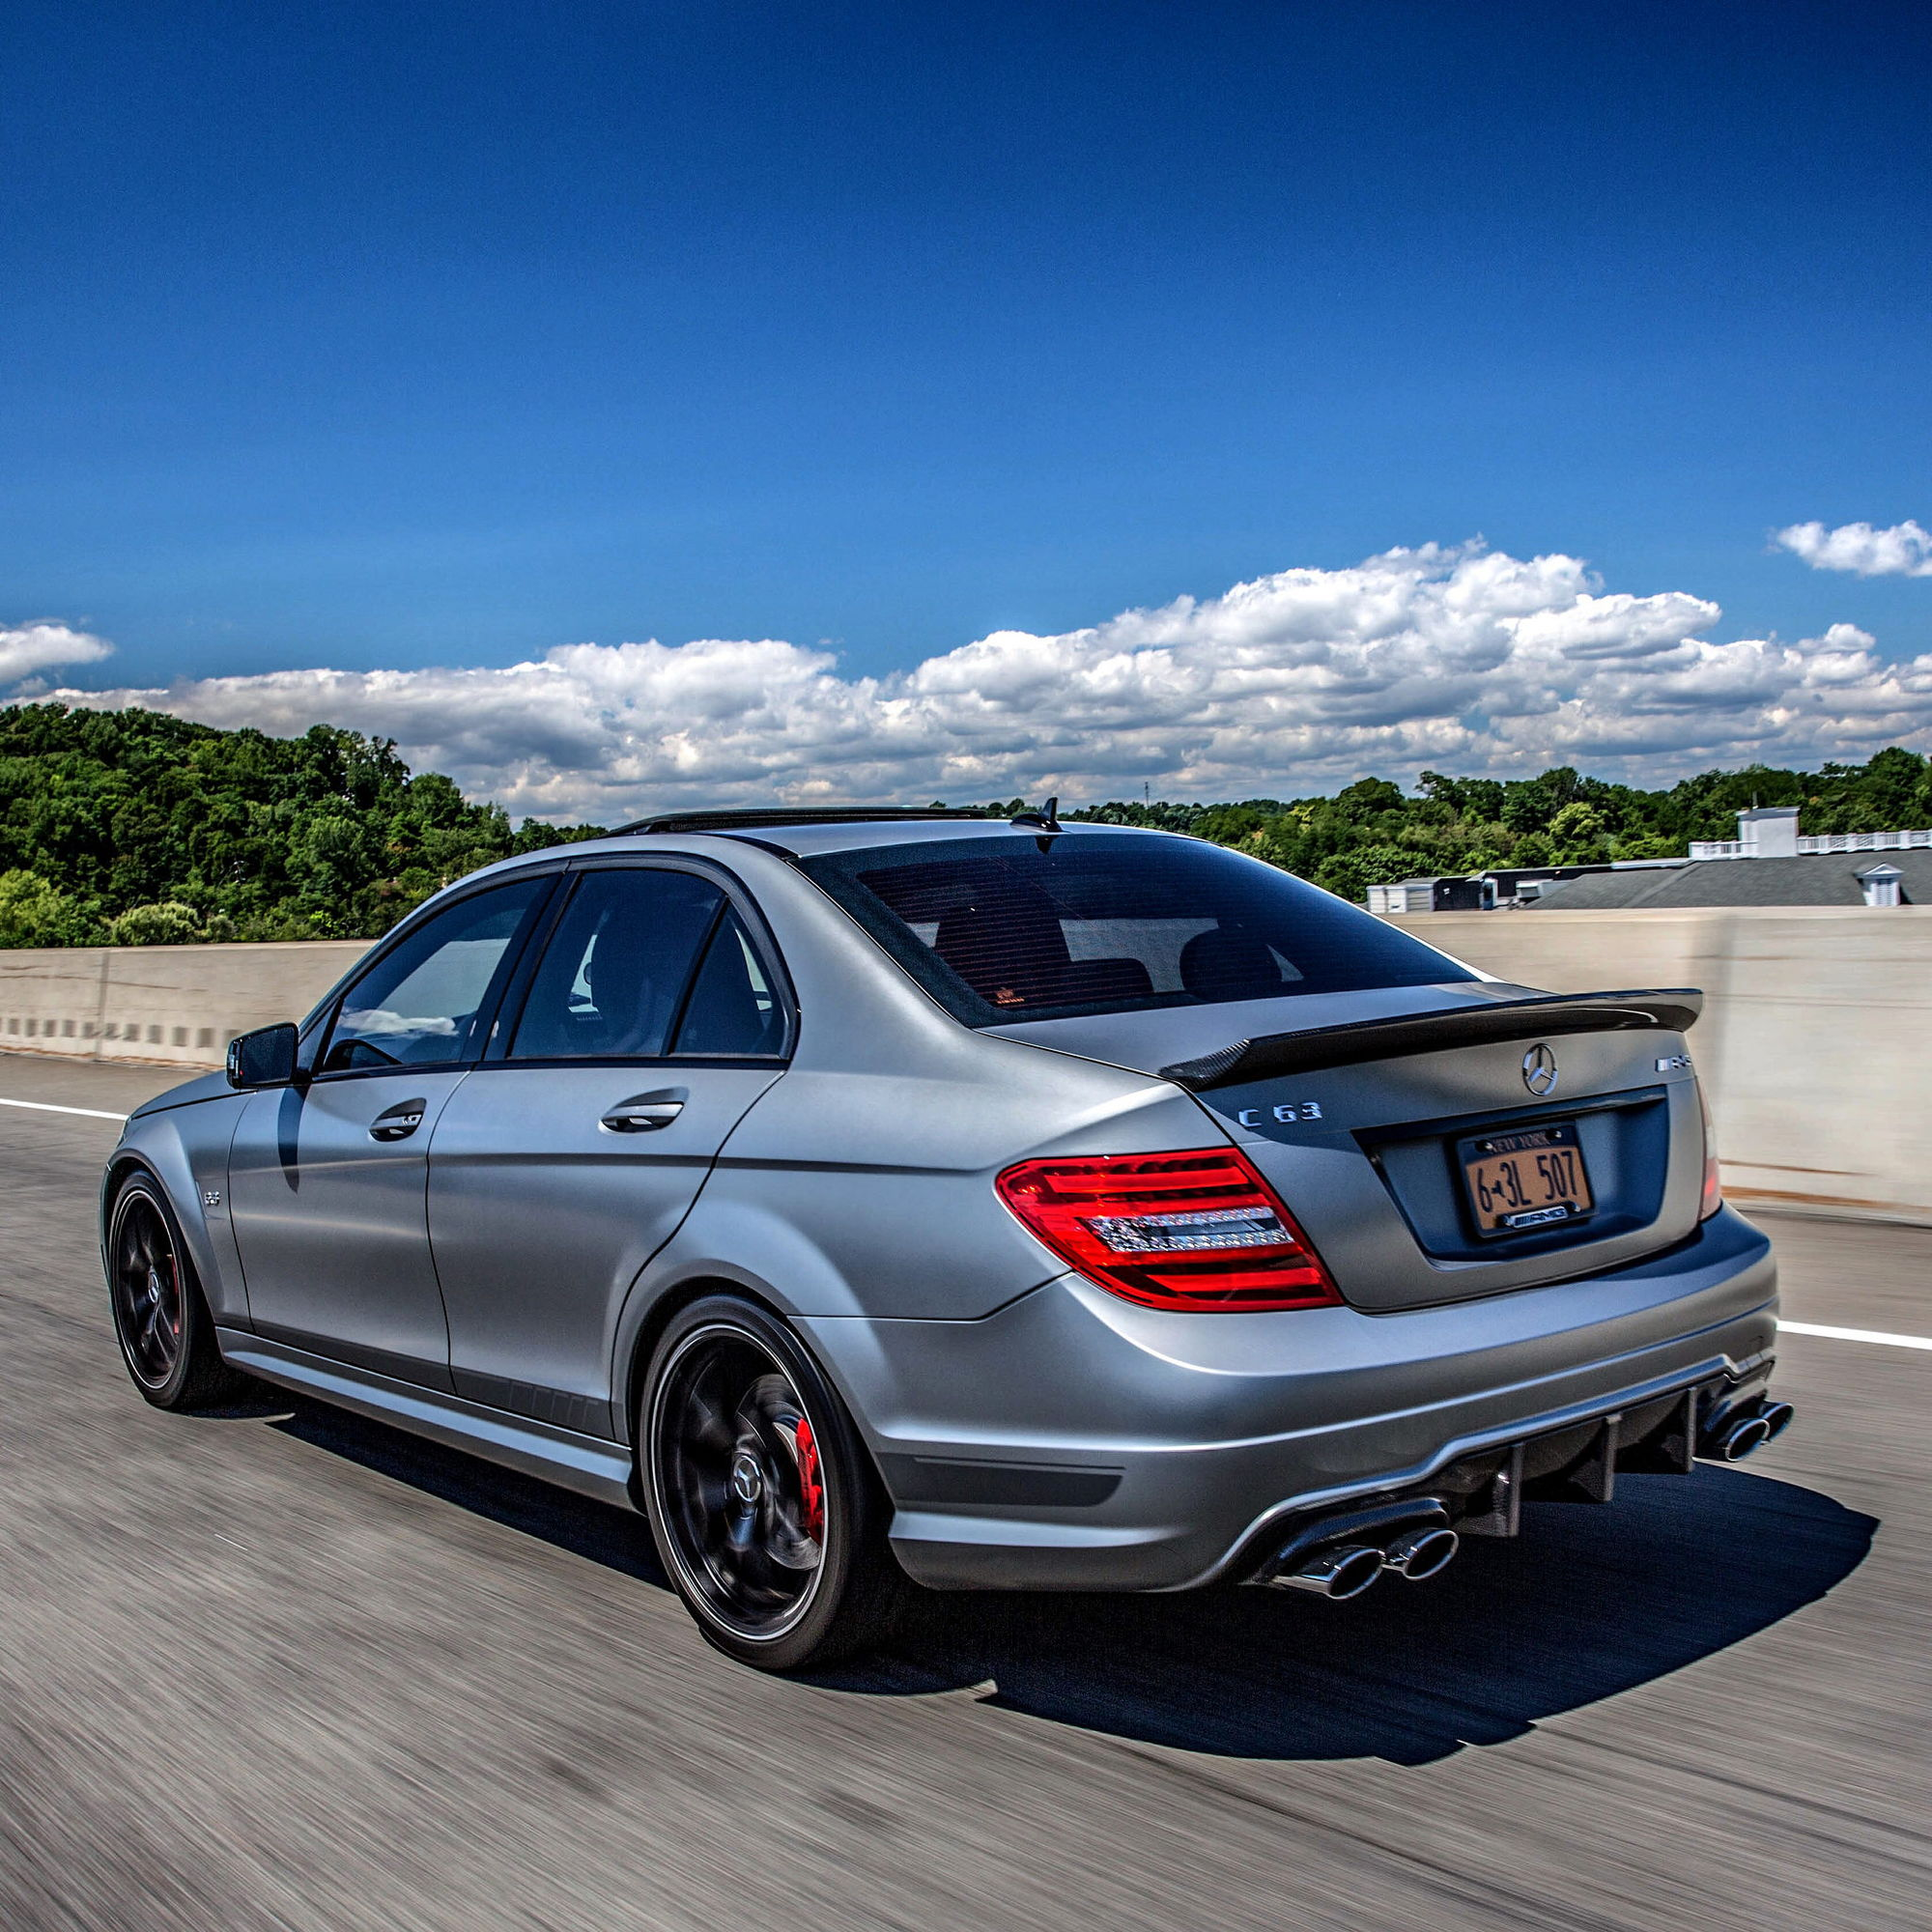 the official c63 amg picture thread post your photos here page 291 forums. Black Bedroom Furniture Sets. Home Design Ideas